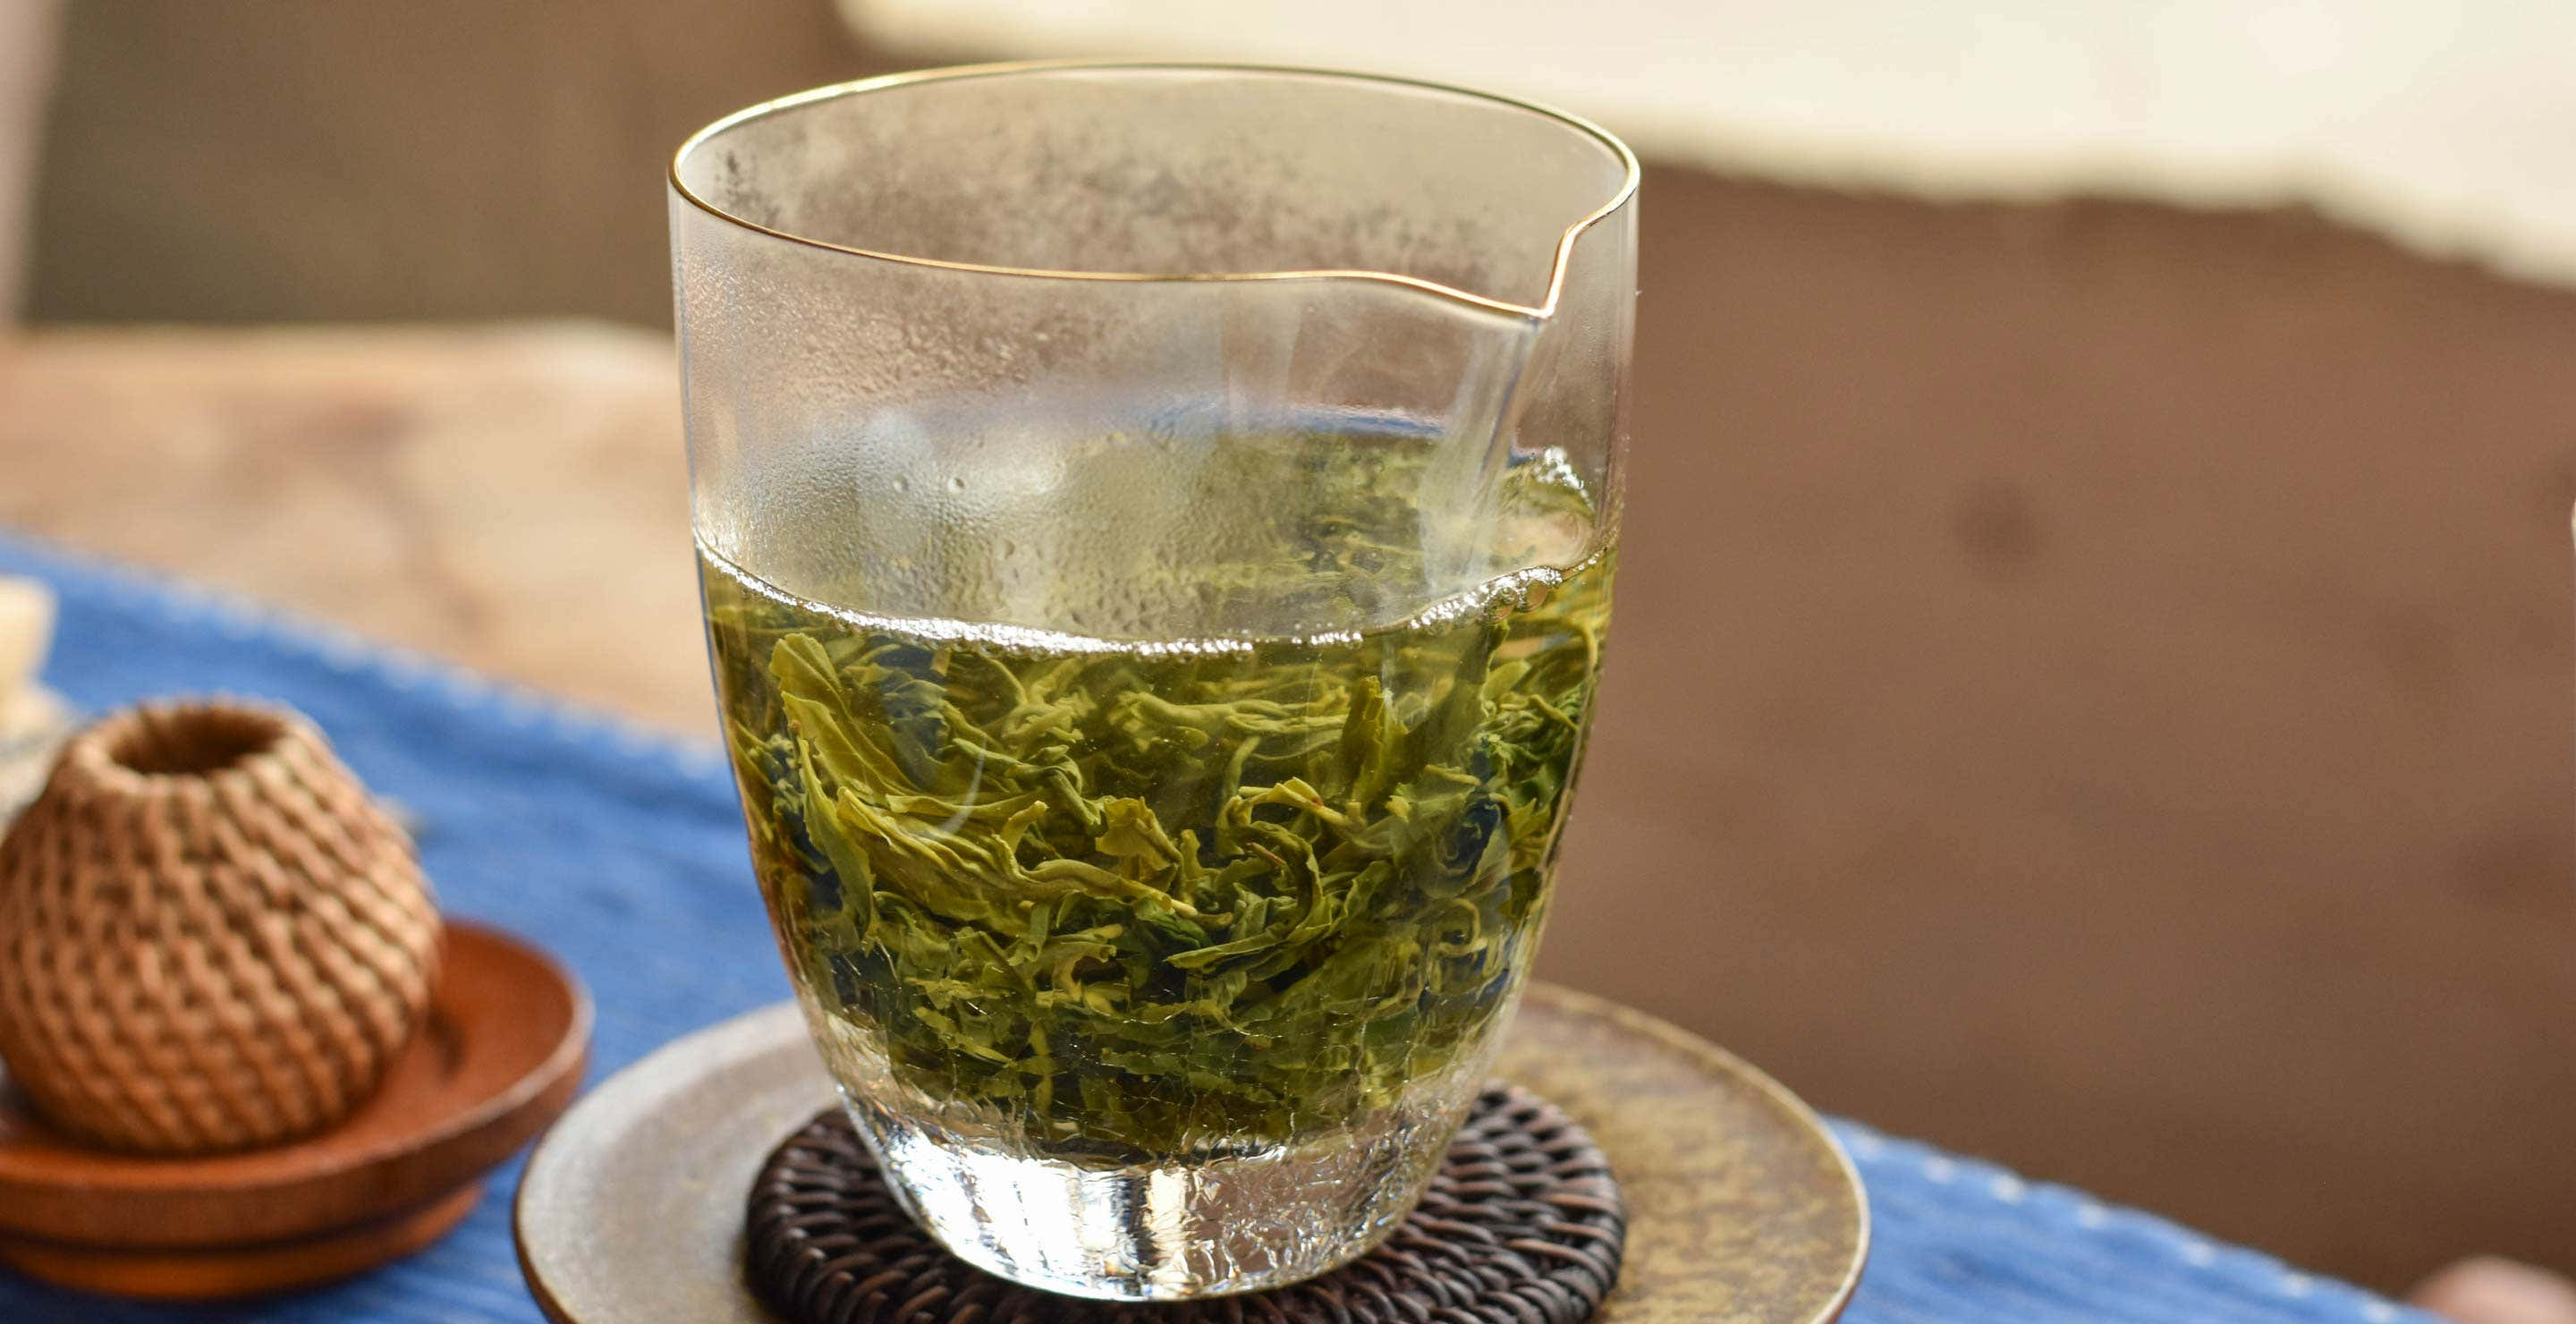 Water is the First Ingredient in Tea